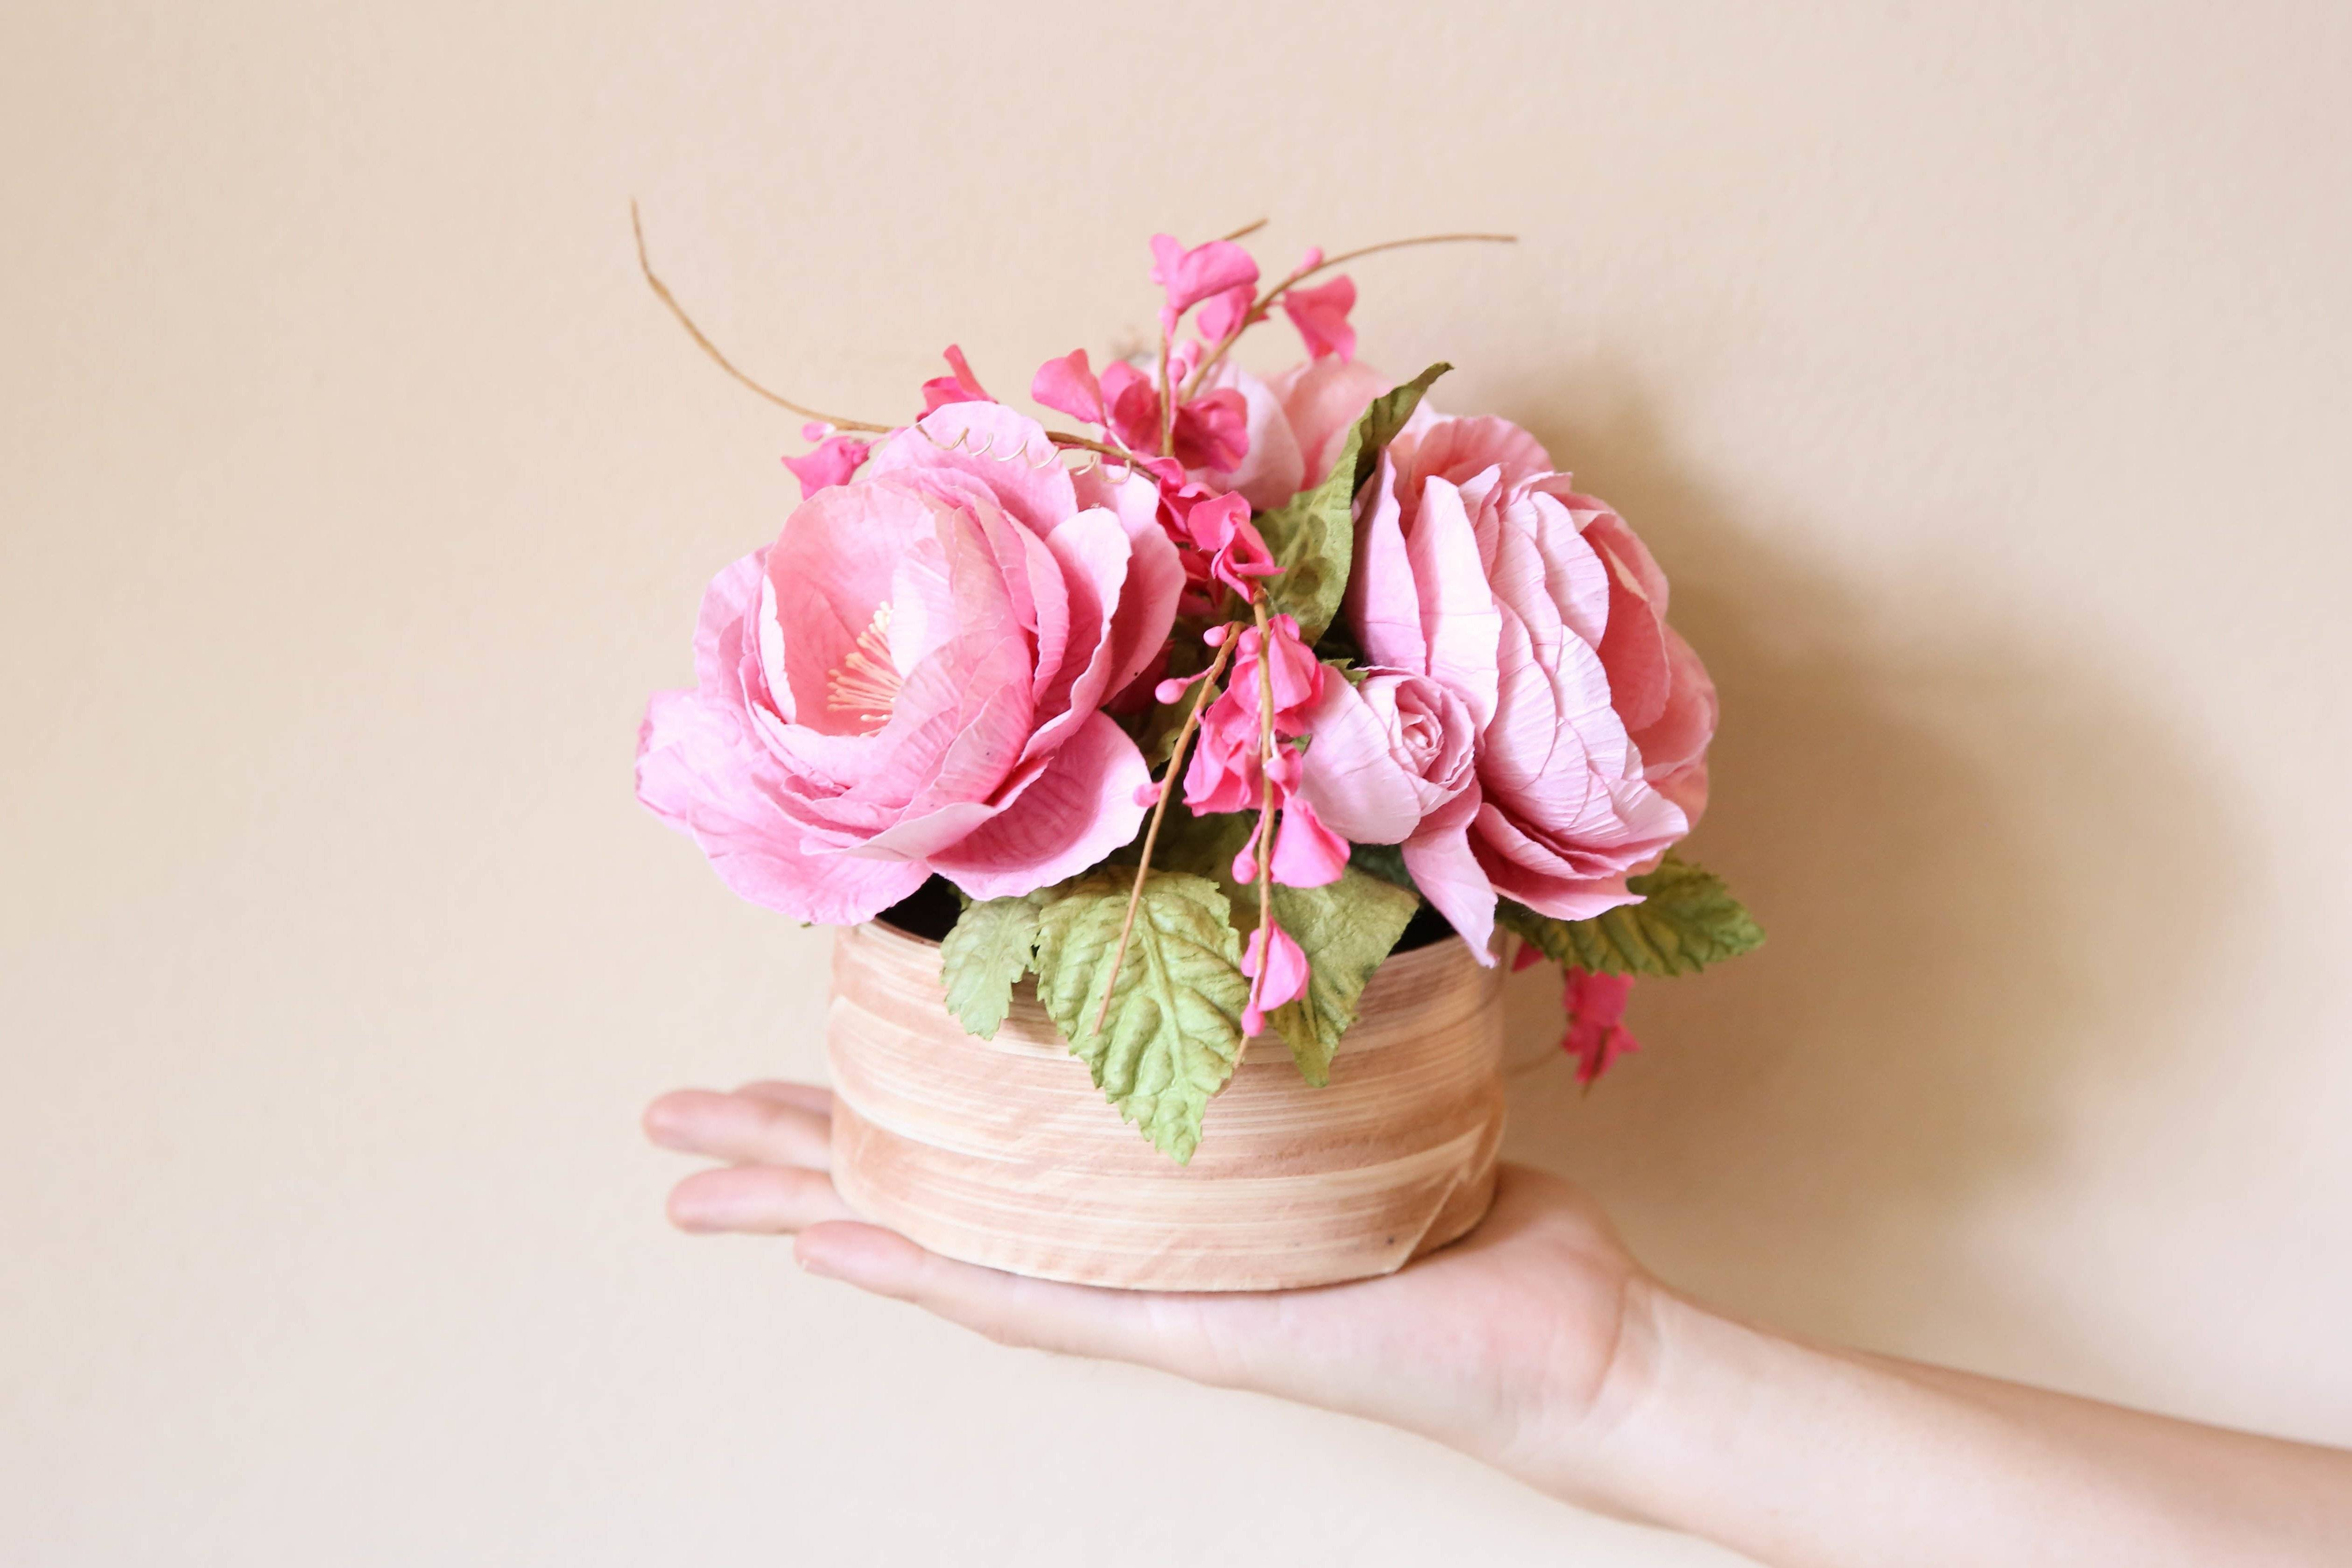 Handicrafts for home: flowers made of crepe paper